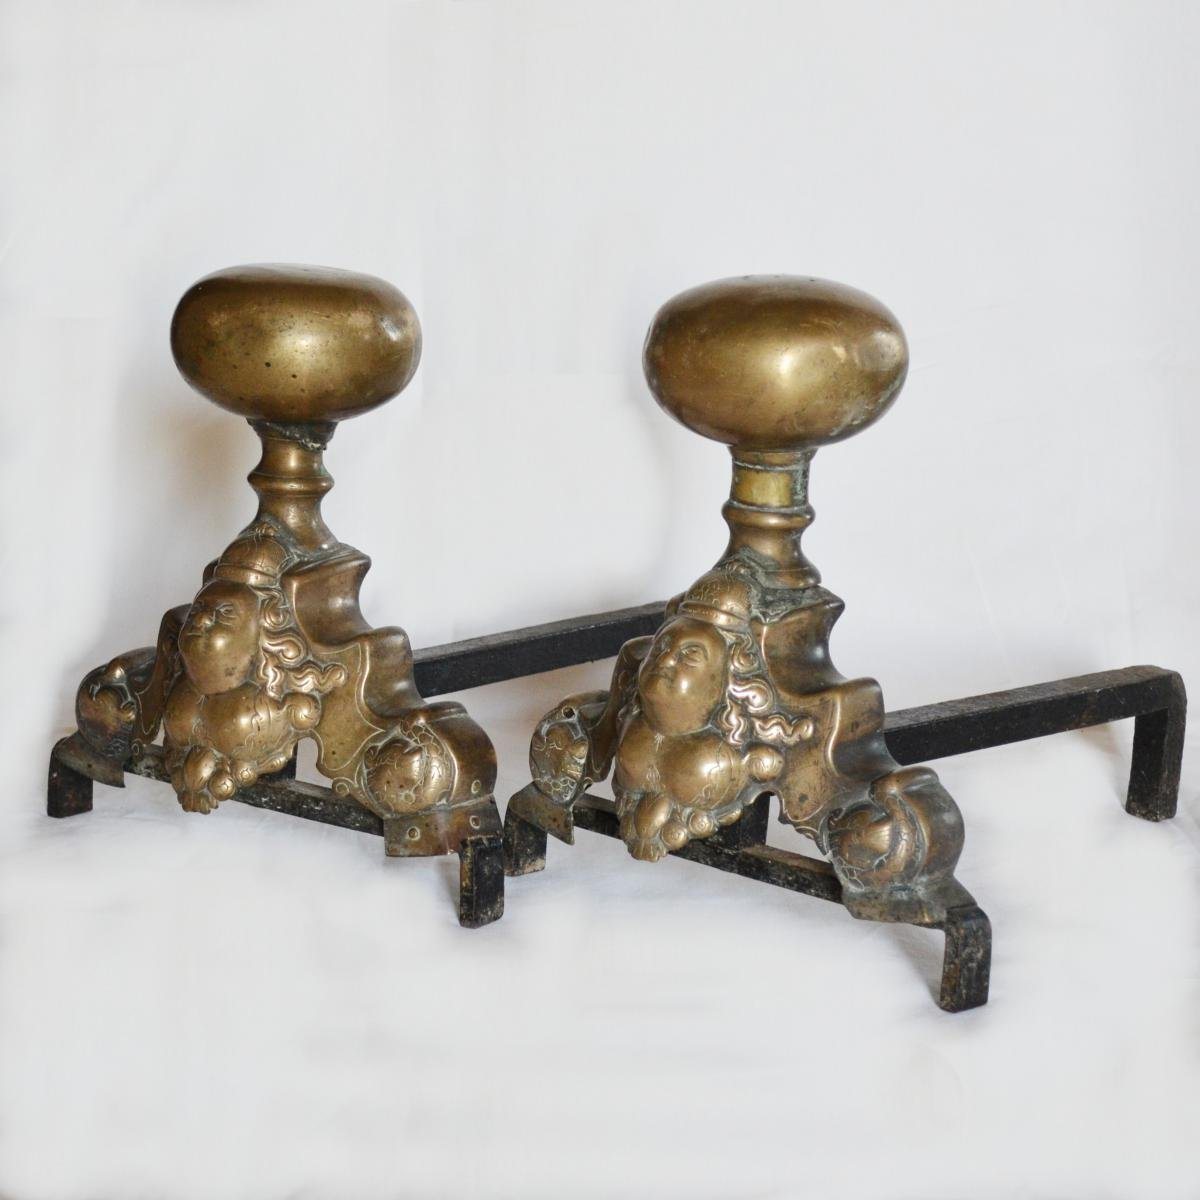 Pair Of Andchers In Marmouset XVII